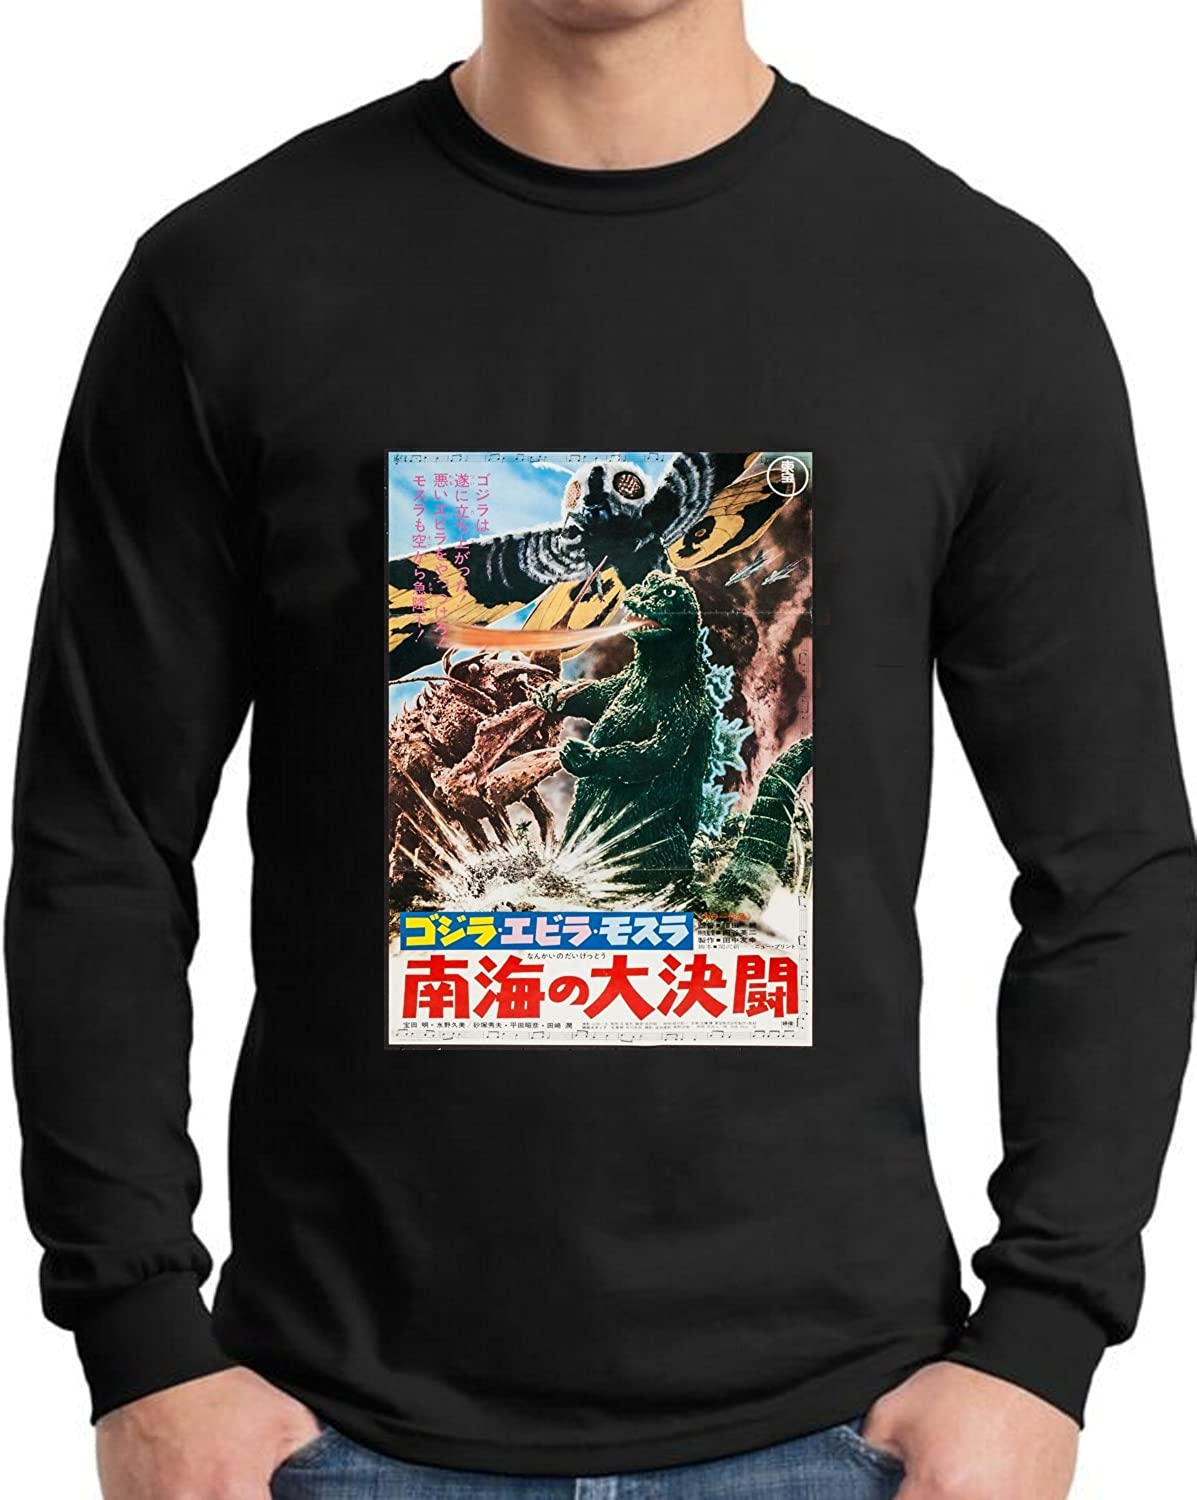 Godzilla Poster T Shirt Long Sleve in Japanese